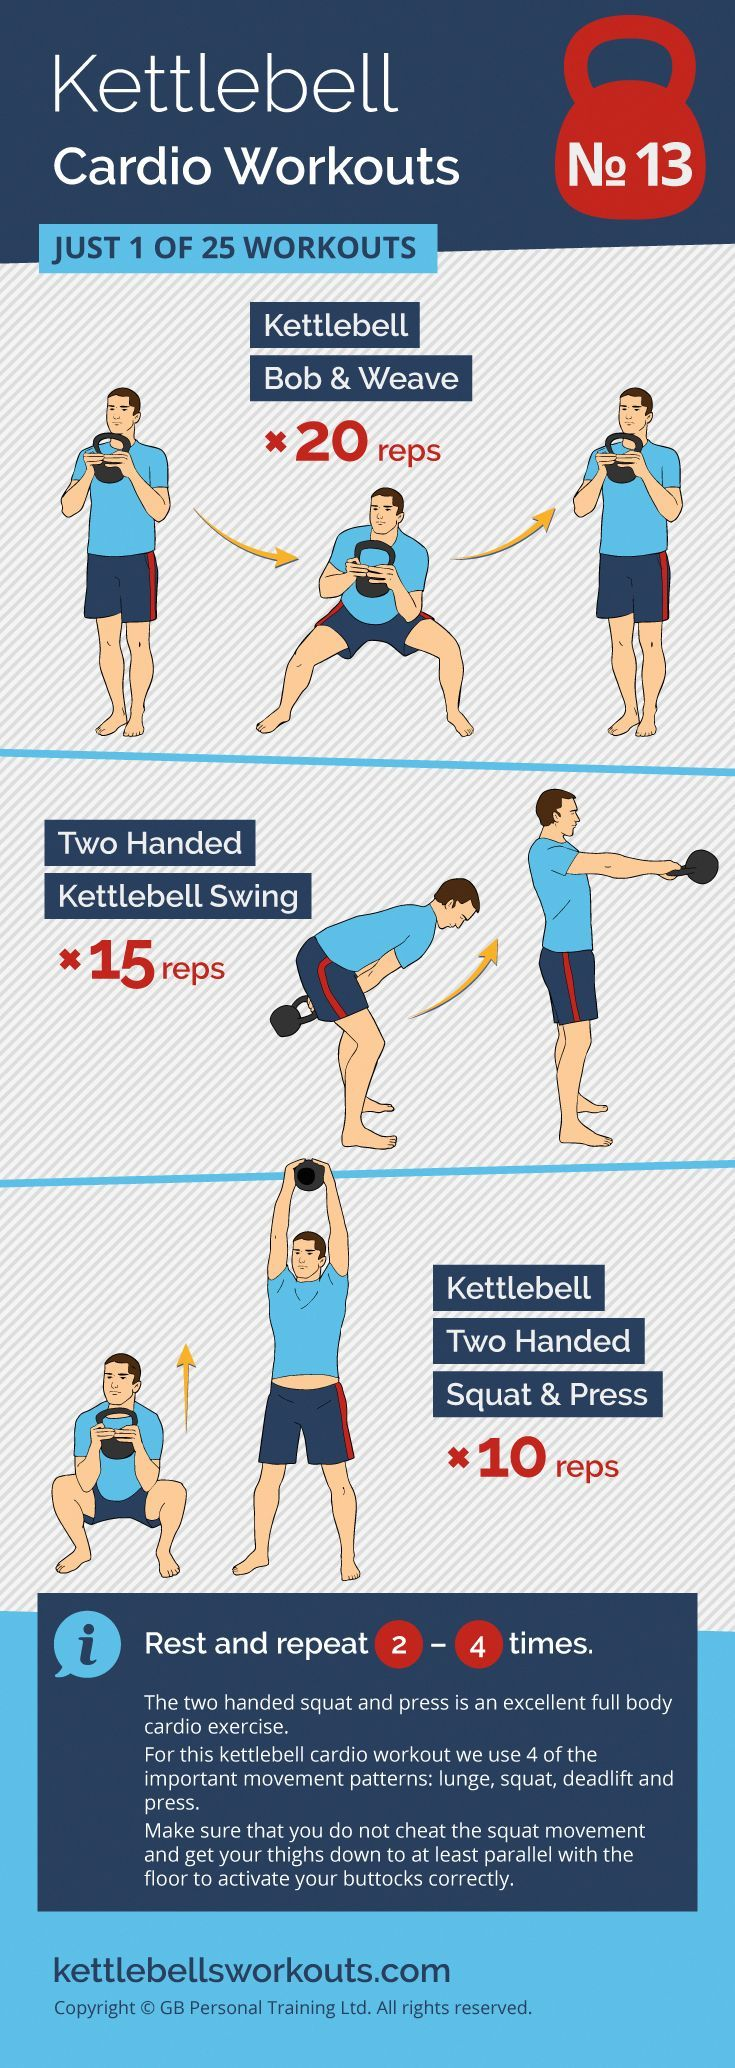 The two handed kettlebell squat and press is an excellent full body cardio exerc…